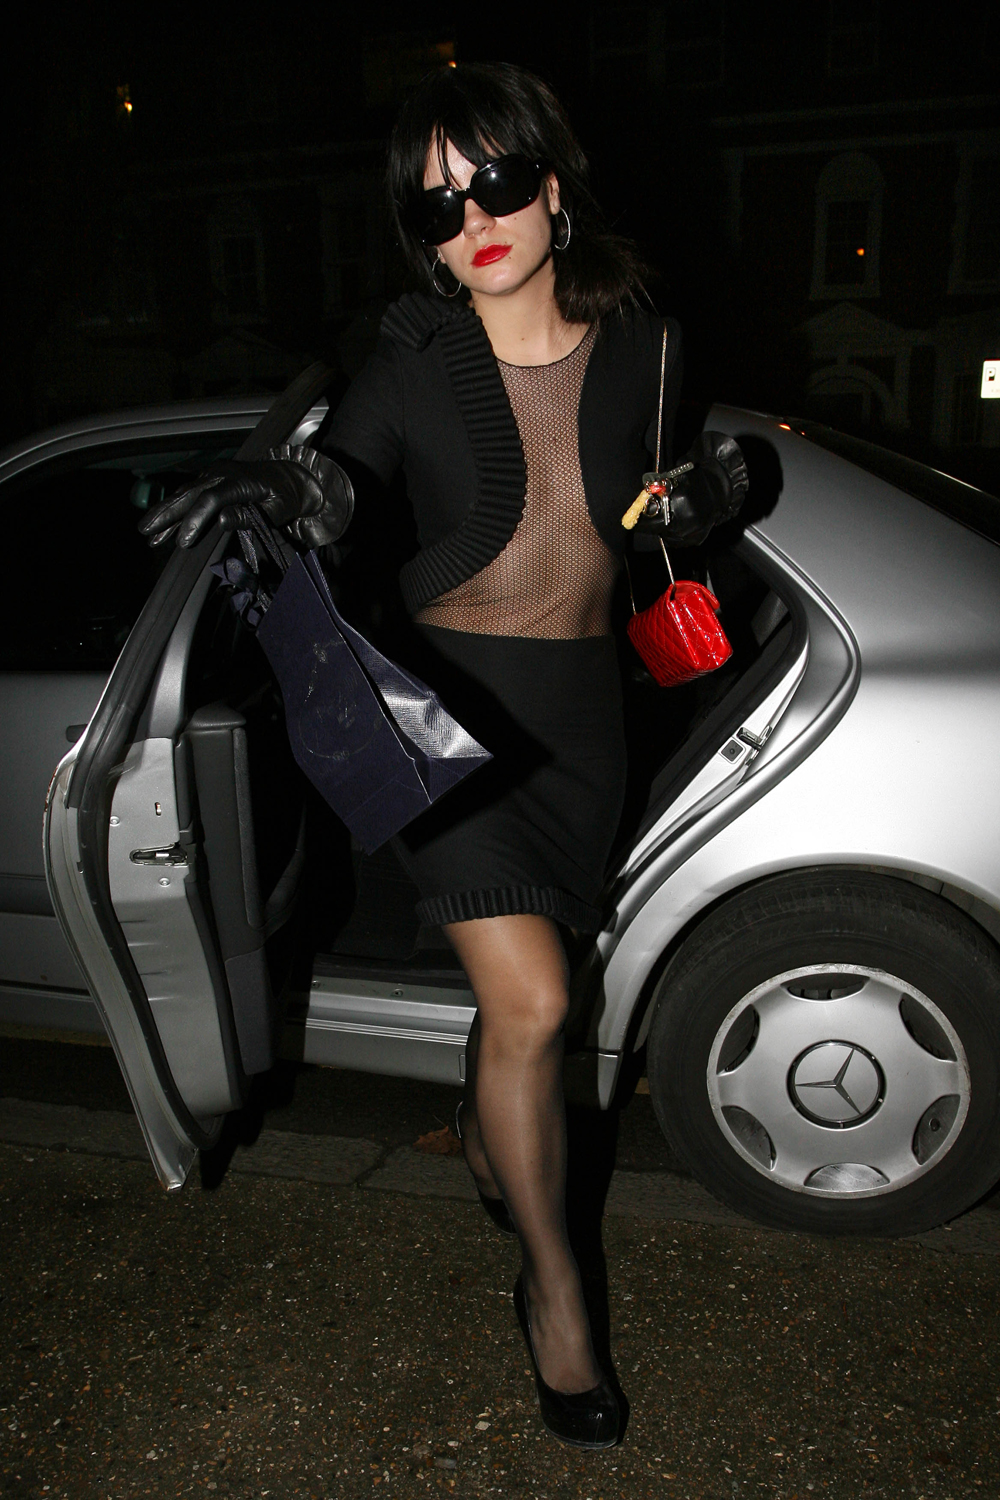 Lily Allen lost weight again; shows off with a mesh shirt: Viewing ... Lily Allen